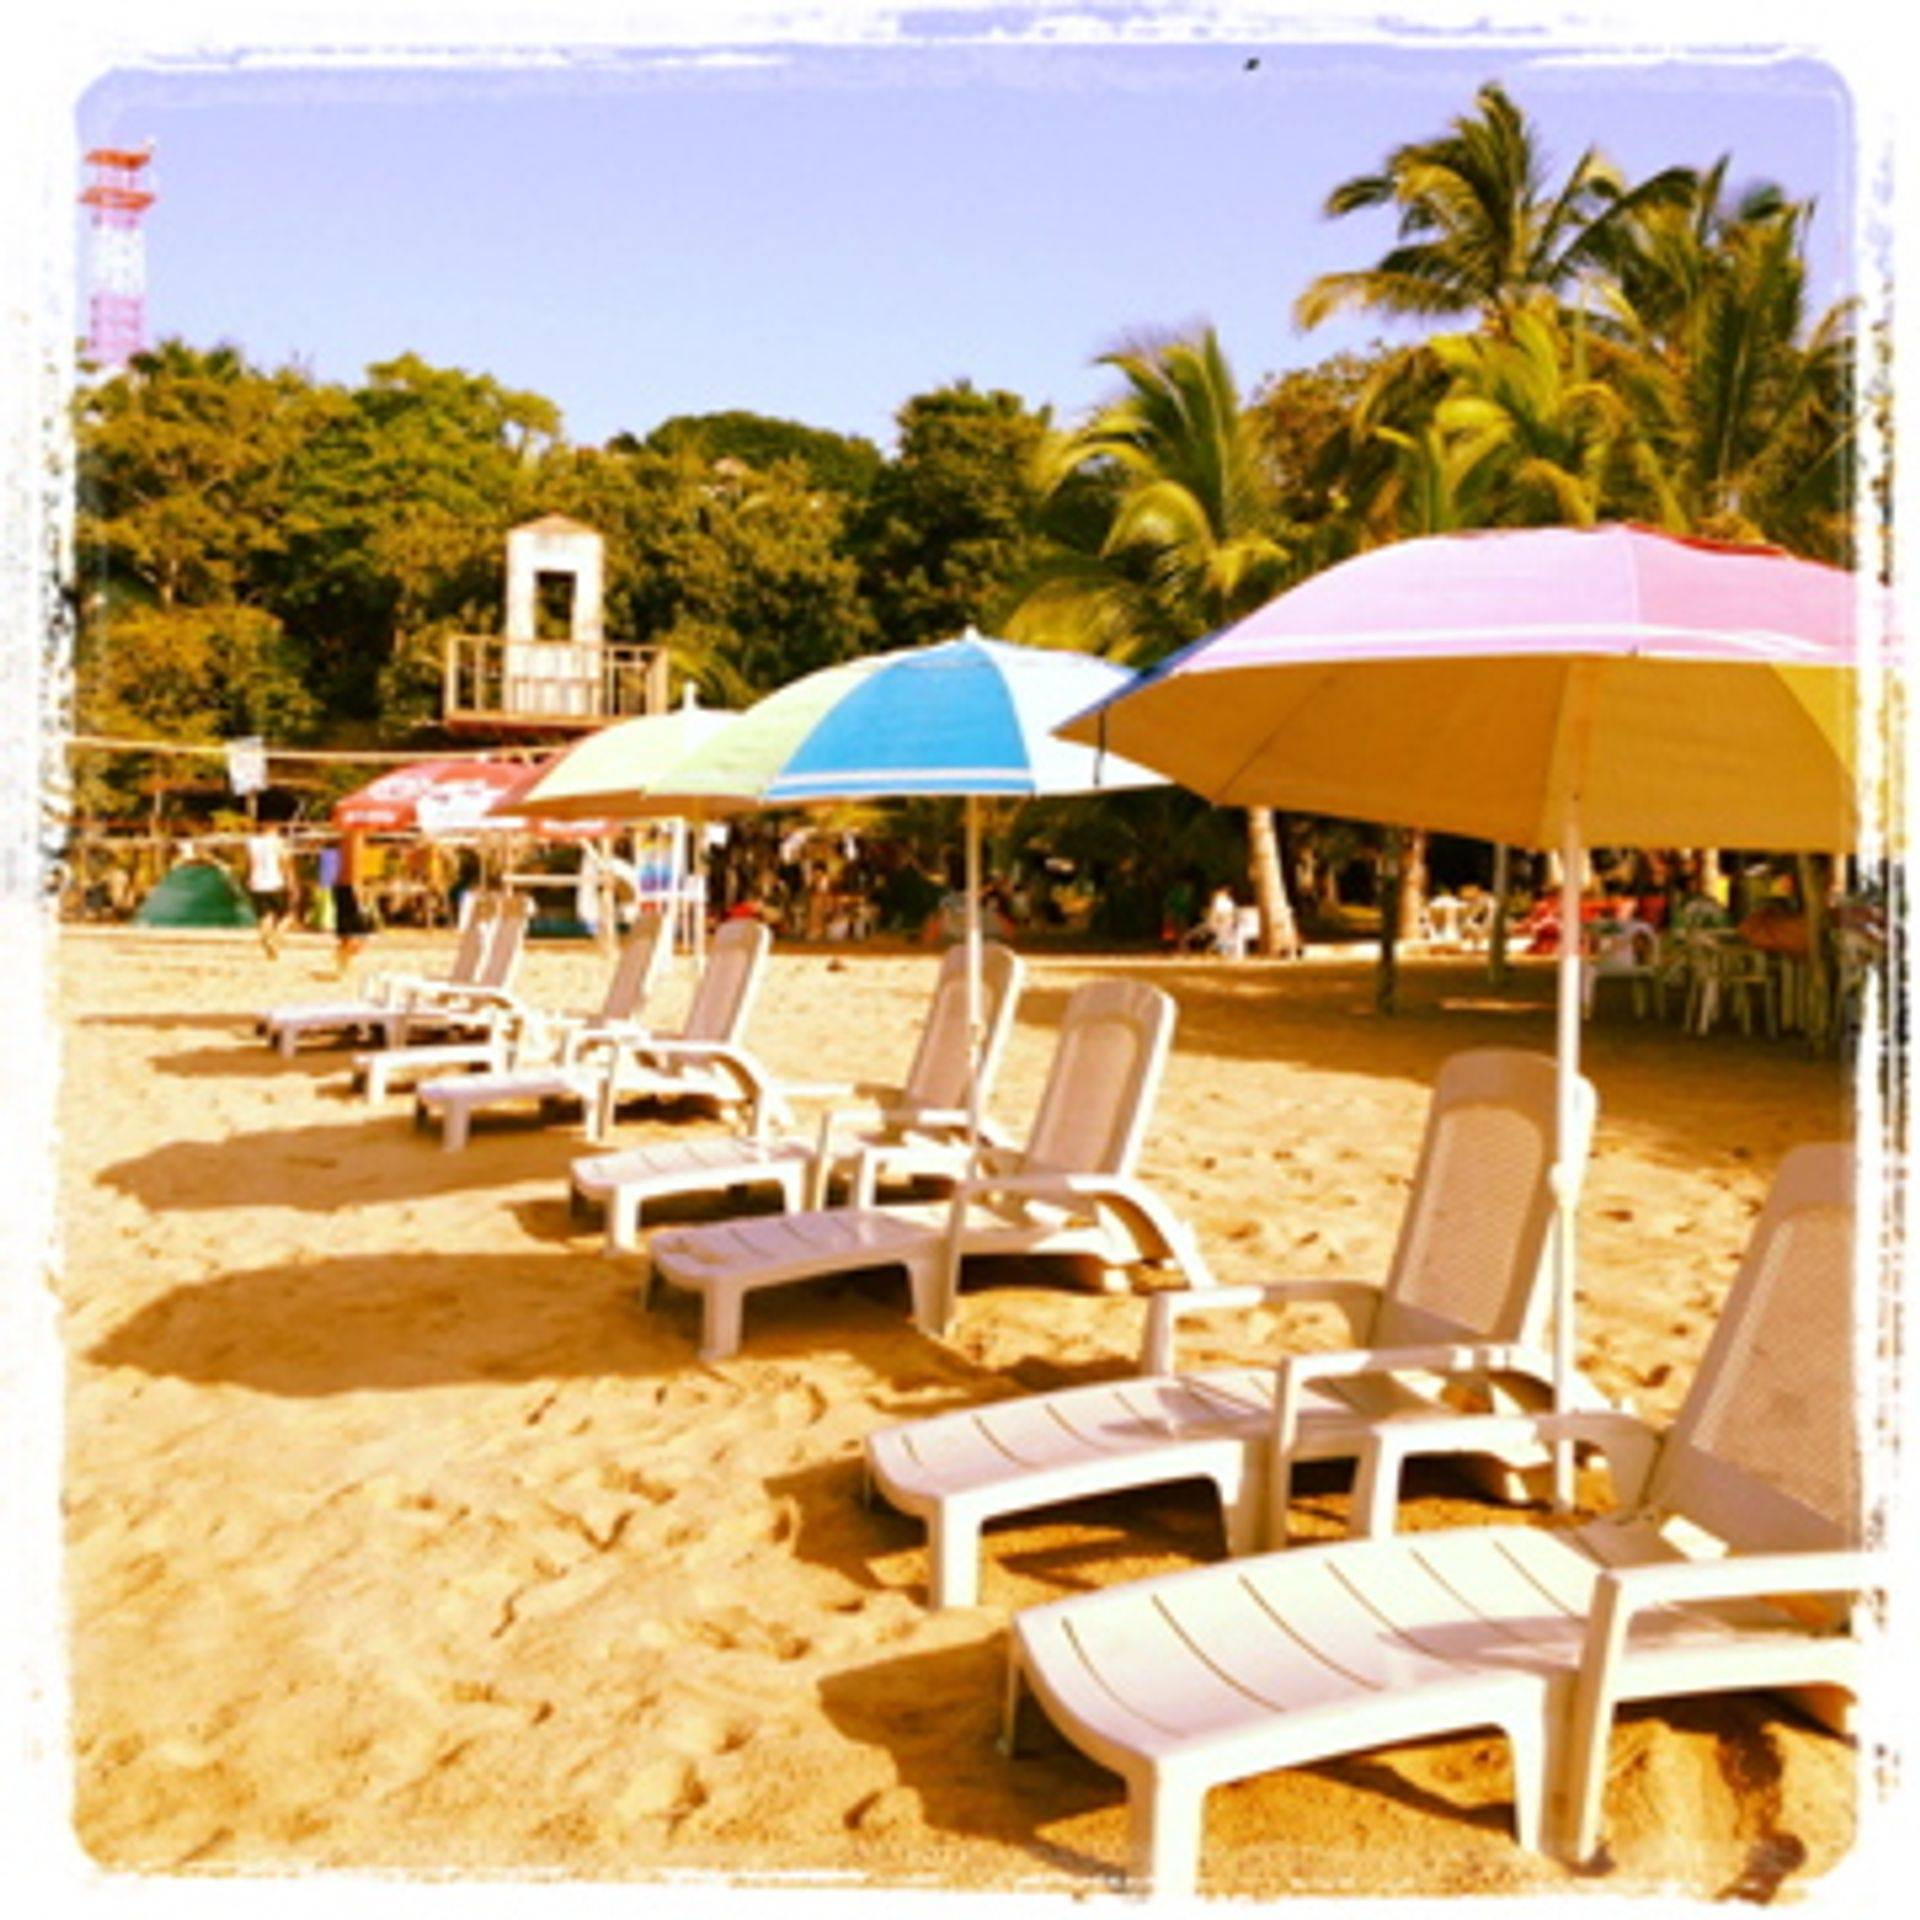 lounge chairs for chac mool customers